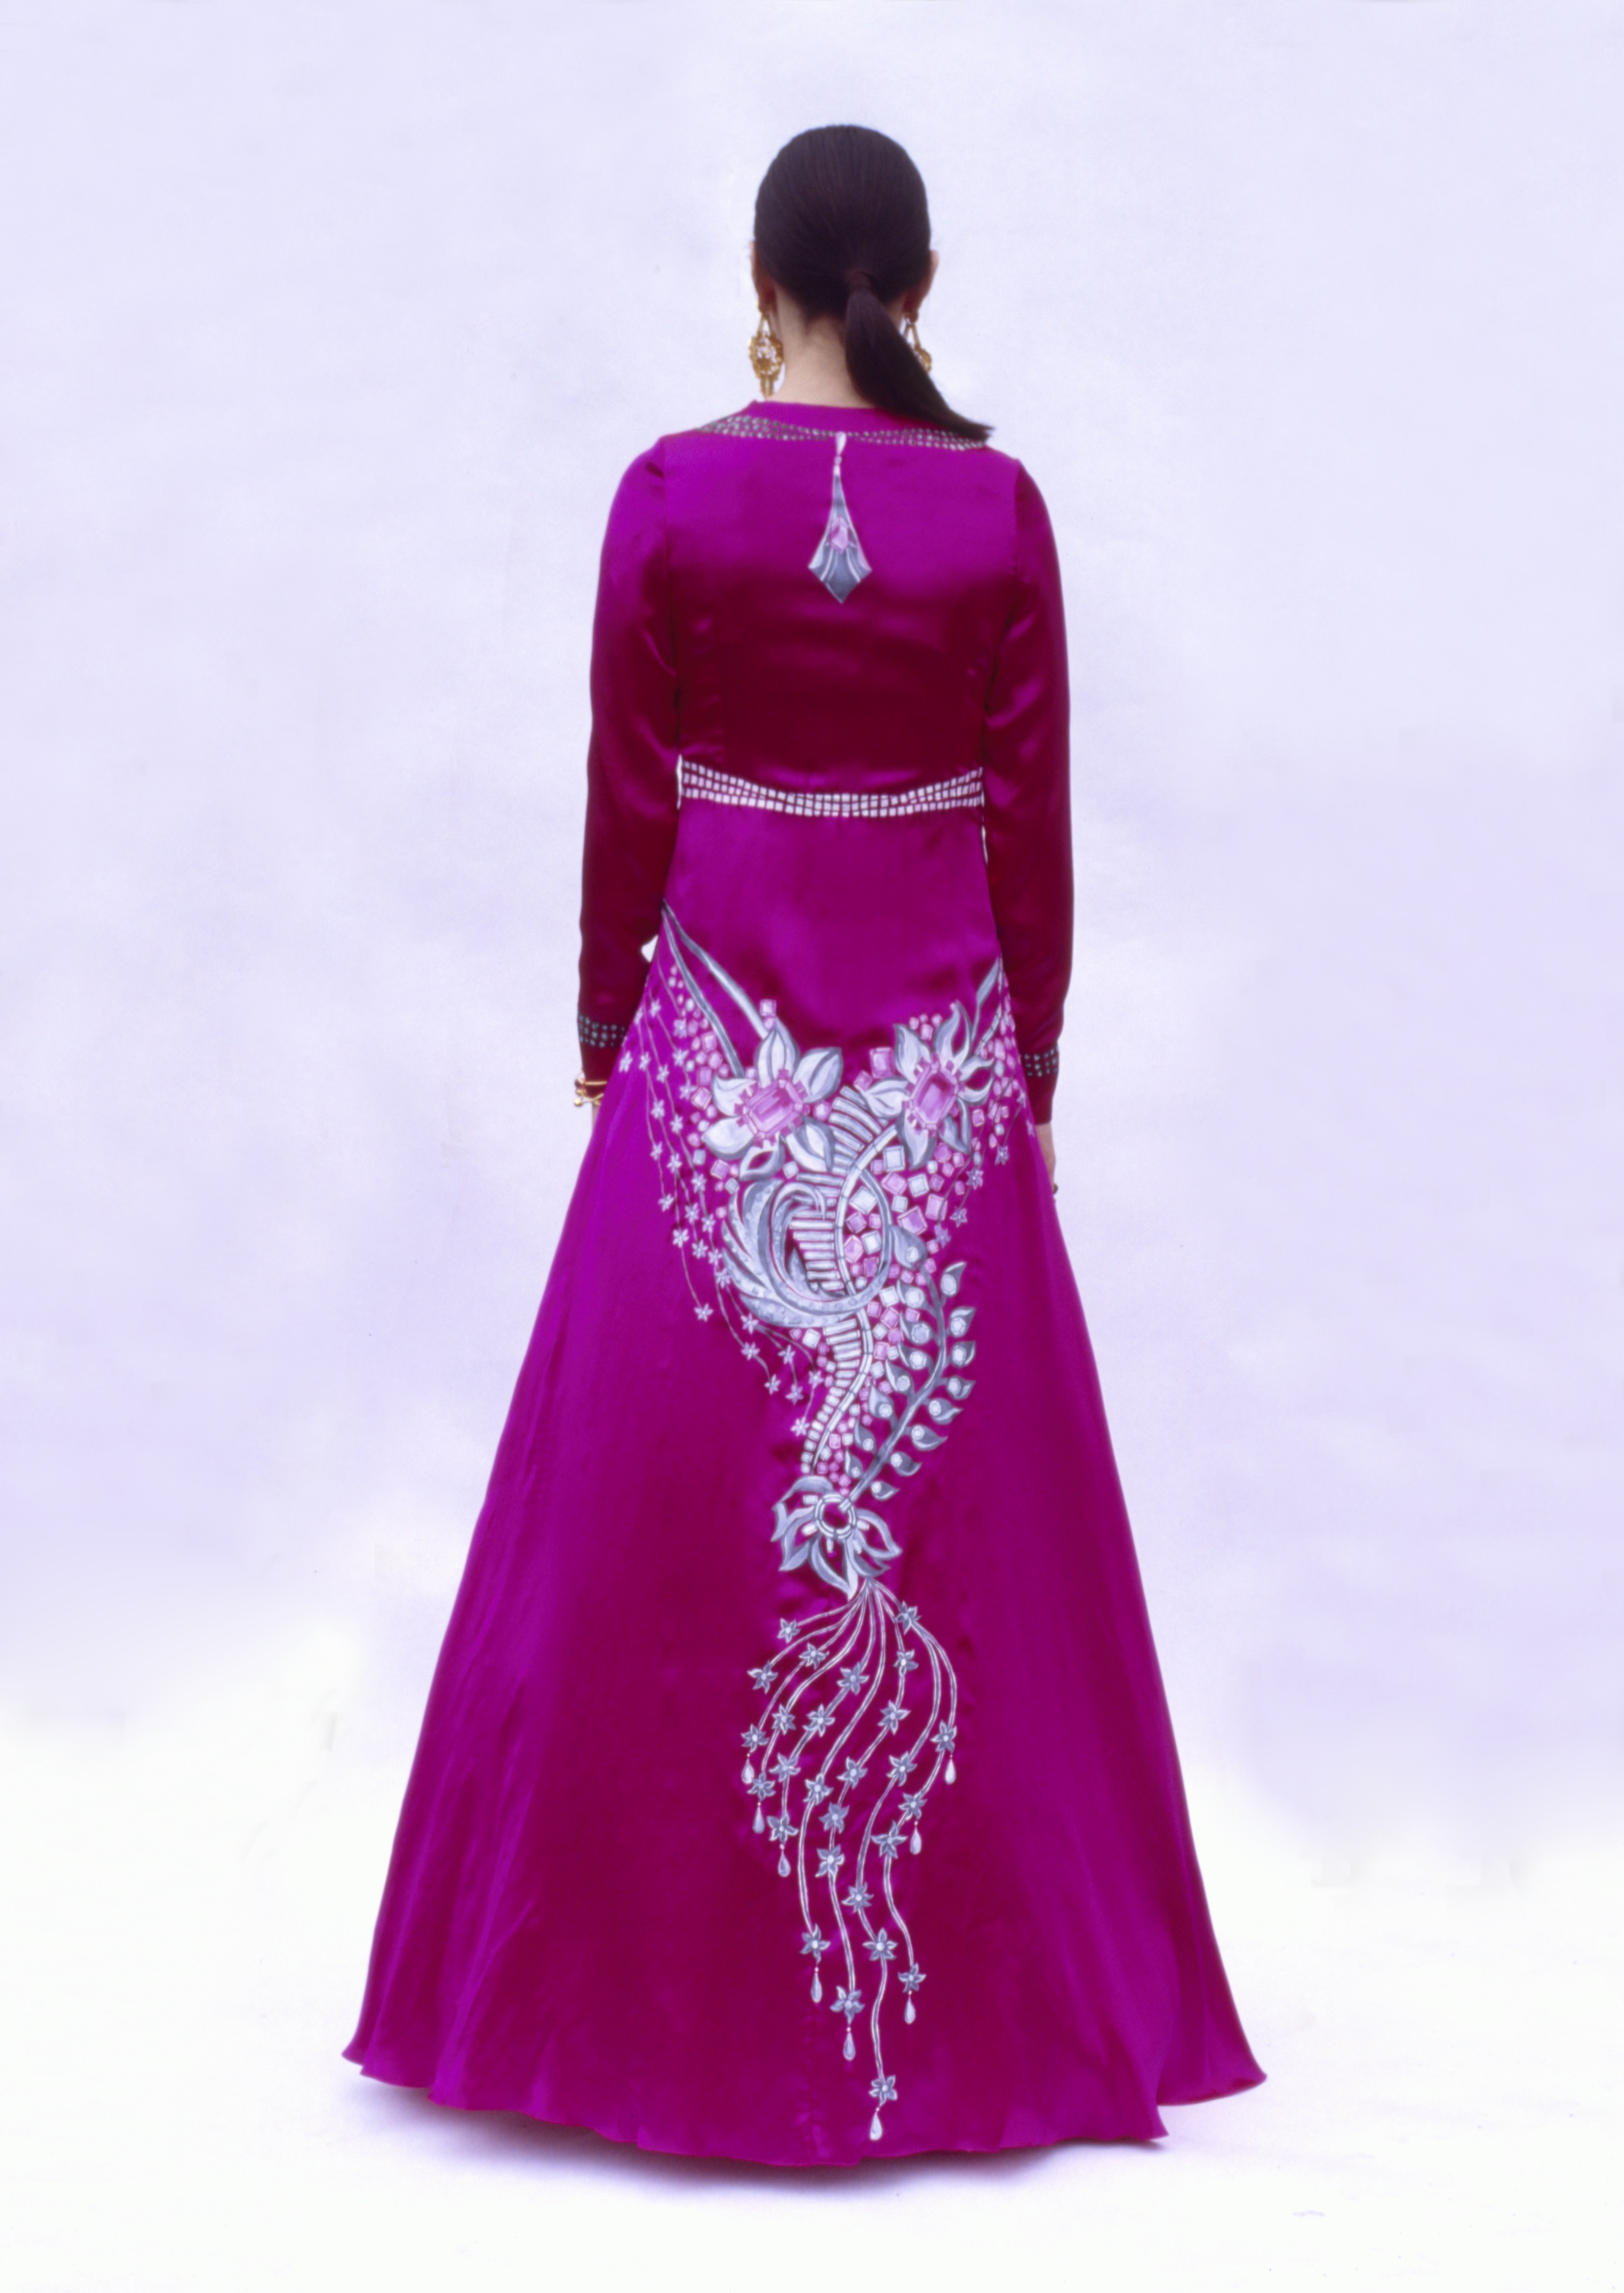 The back of a fuchsia gown